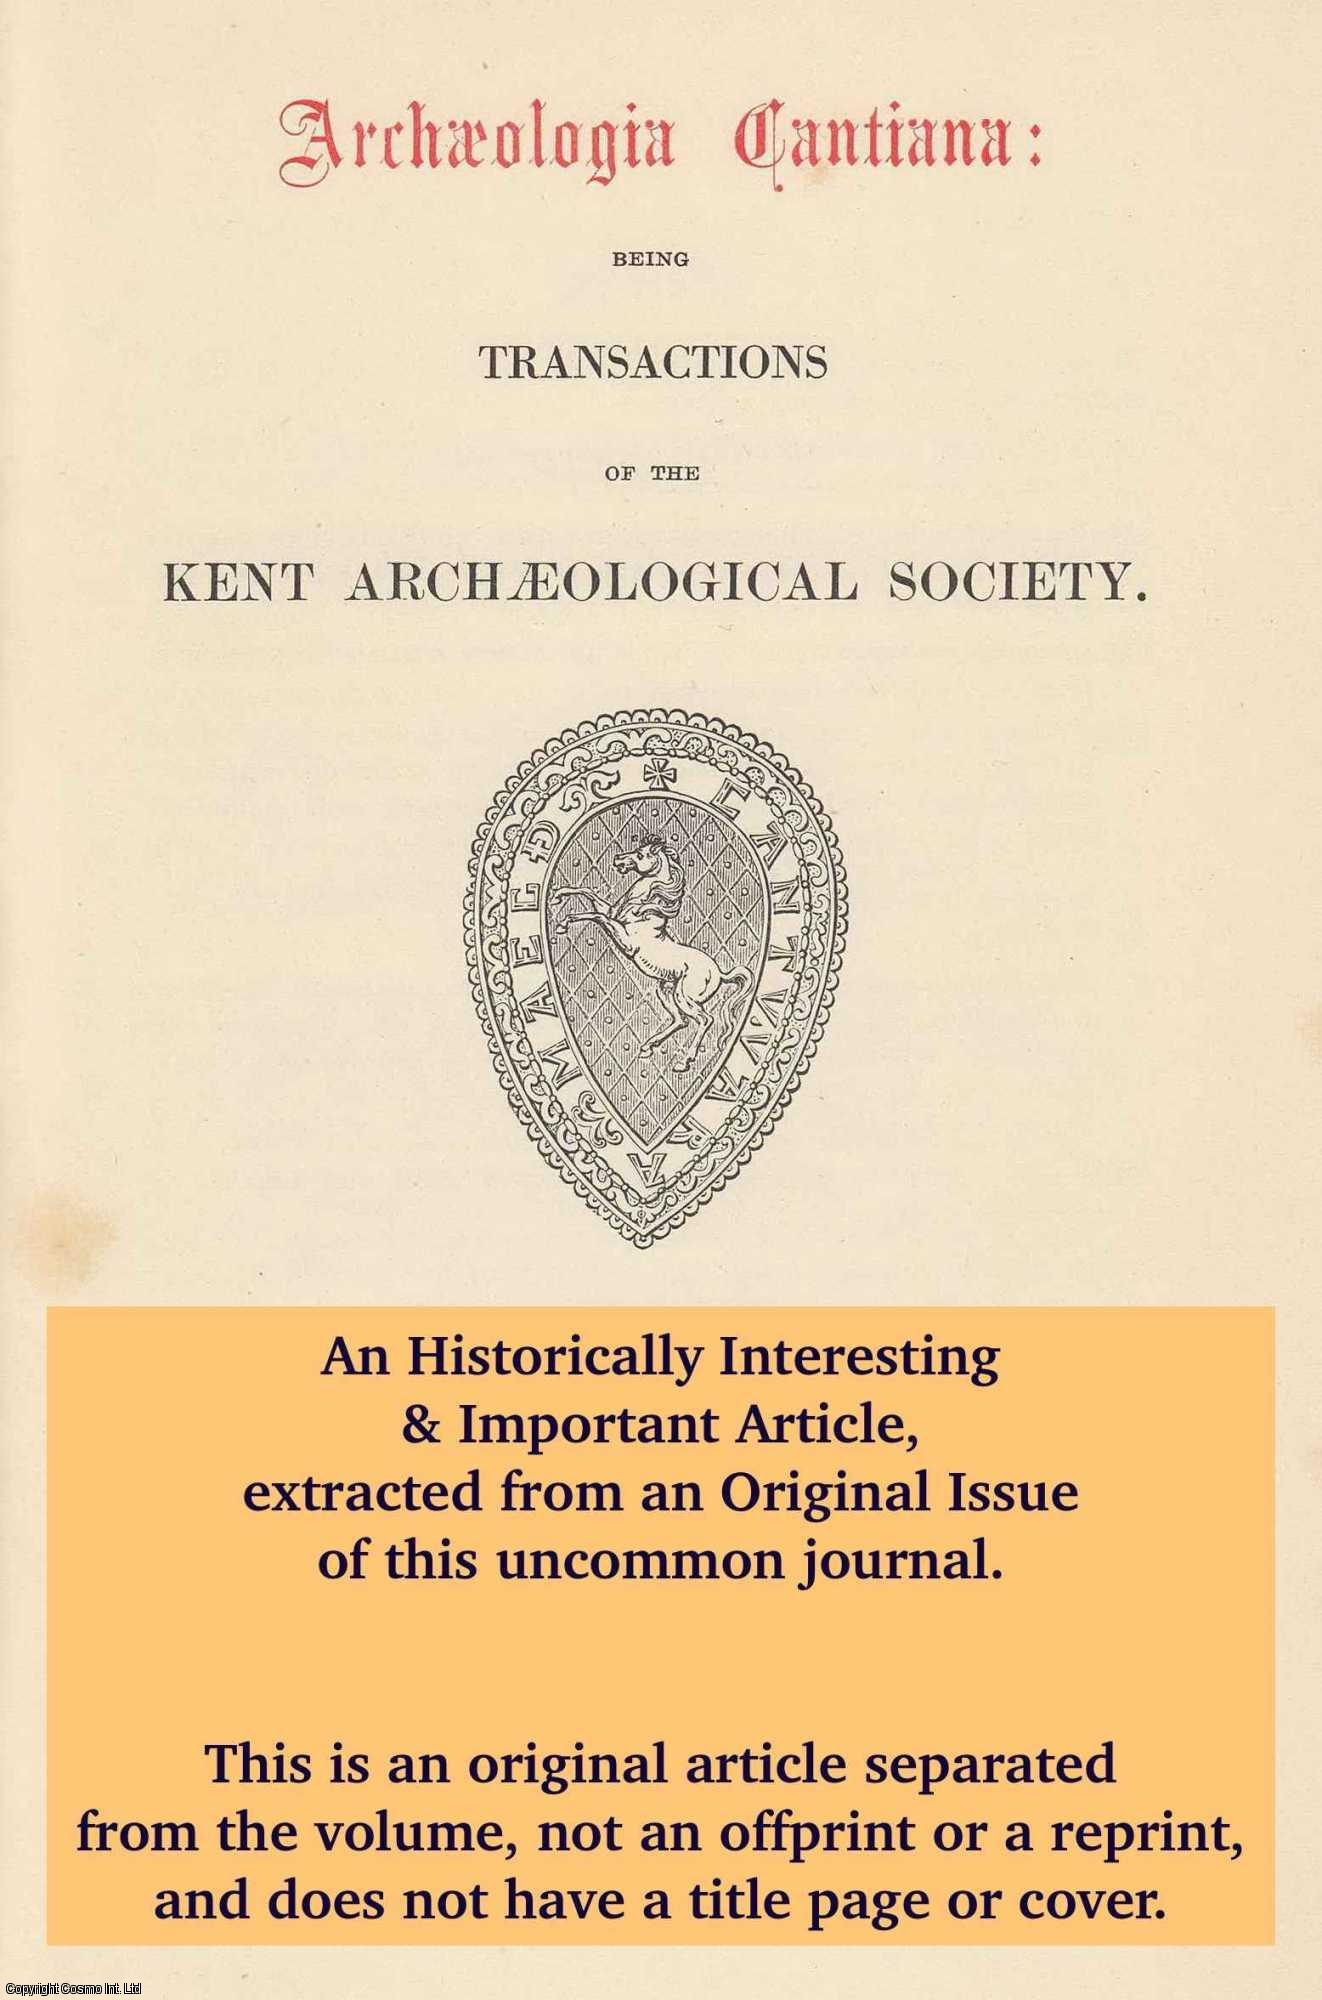 BRIDGE, JOHN W. - Thomas Vicary. A Famous Maidstone Surgeon. An original article from The Archaeologia Cantiana: Being Transactions of The Kent Archaeological Society, 1949.